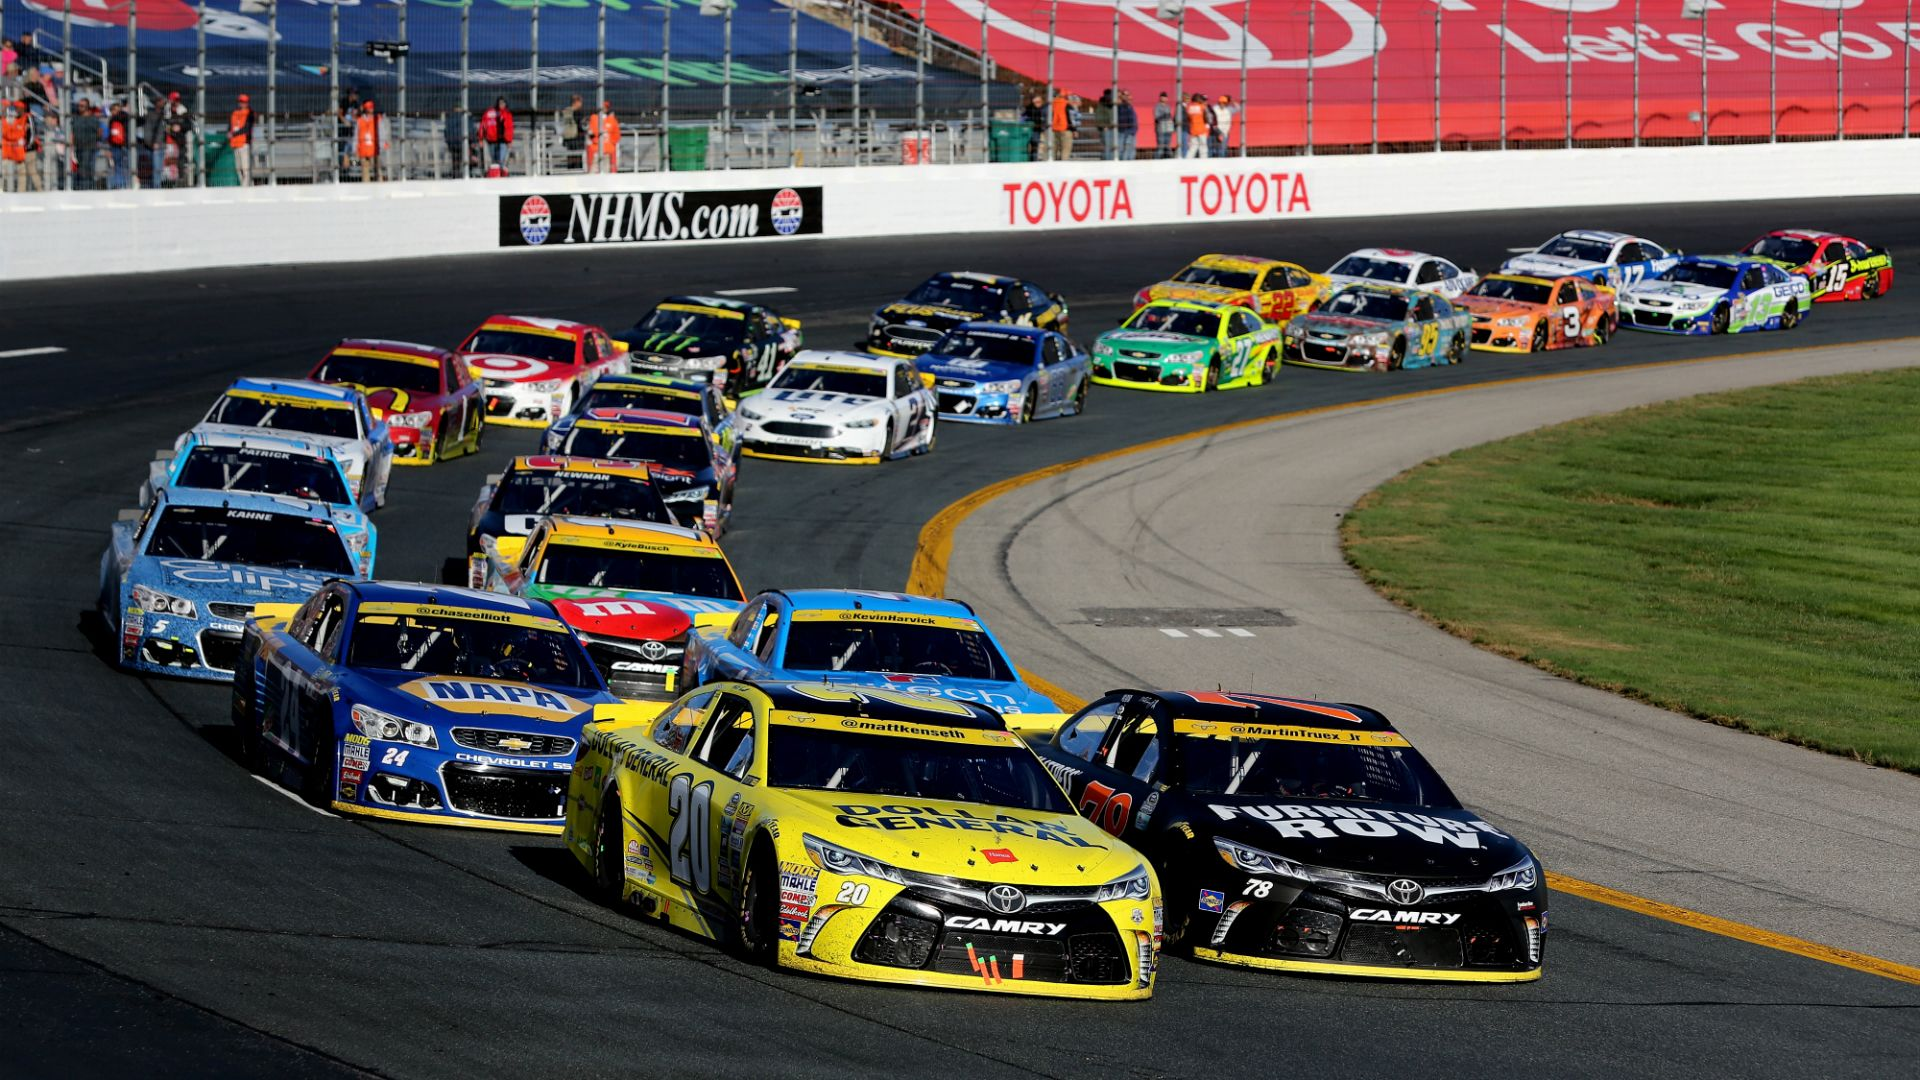 Watch all NASCAR races live by signing up on our site with